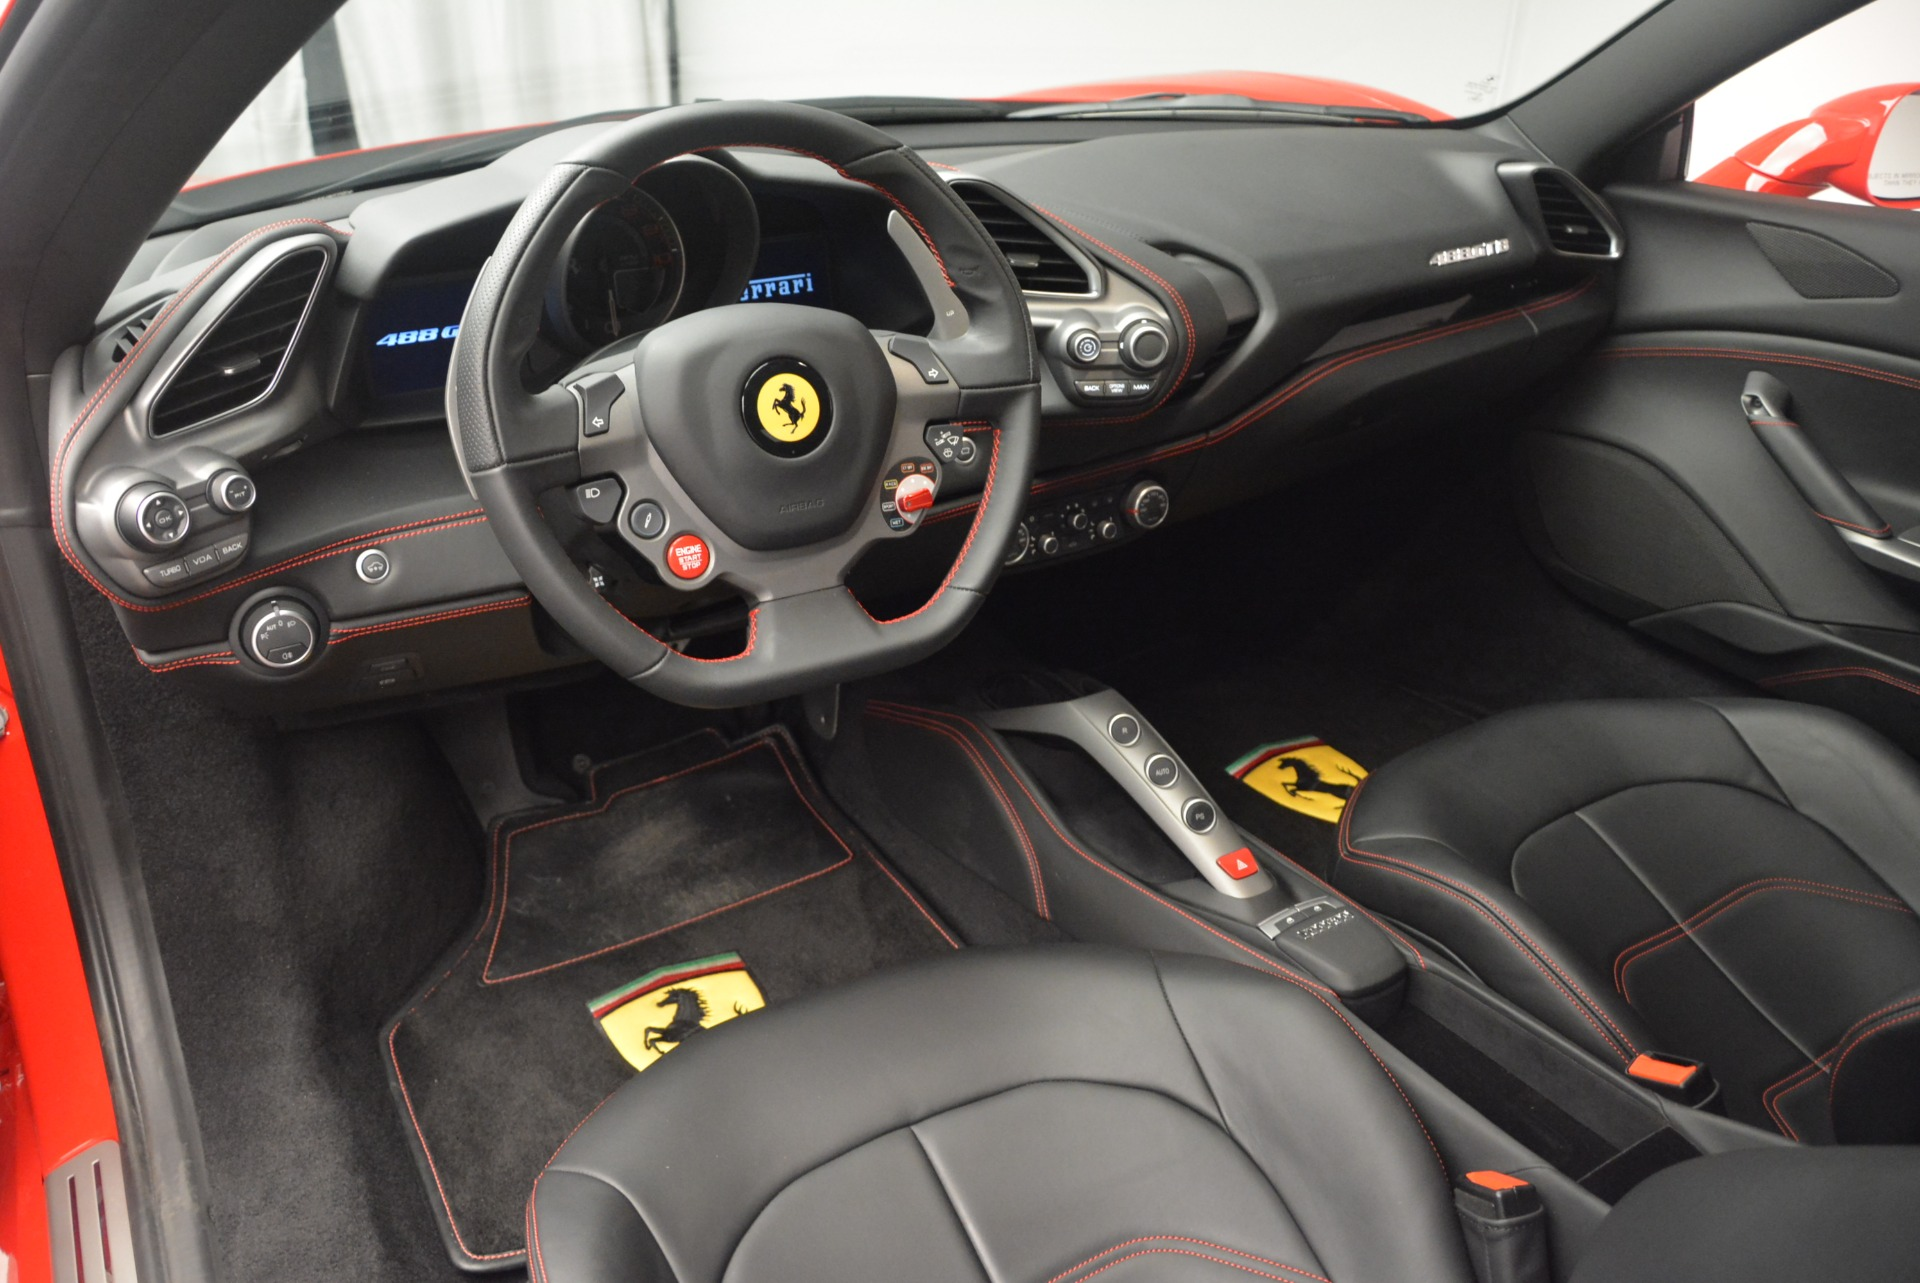 Used 2017 Ferrari 488 GTB  For Sale In Greenwich, CT. Alfa Romeo of Greenwich, 4488 2365_p13